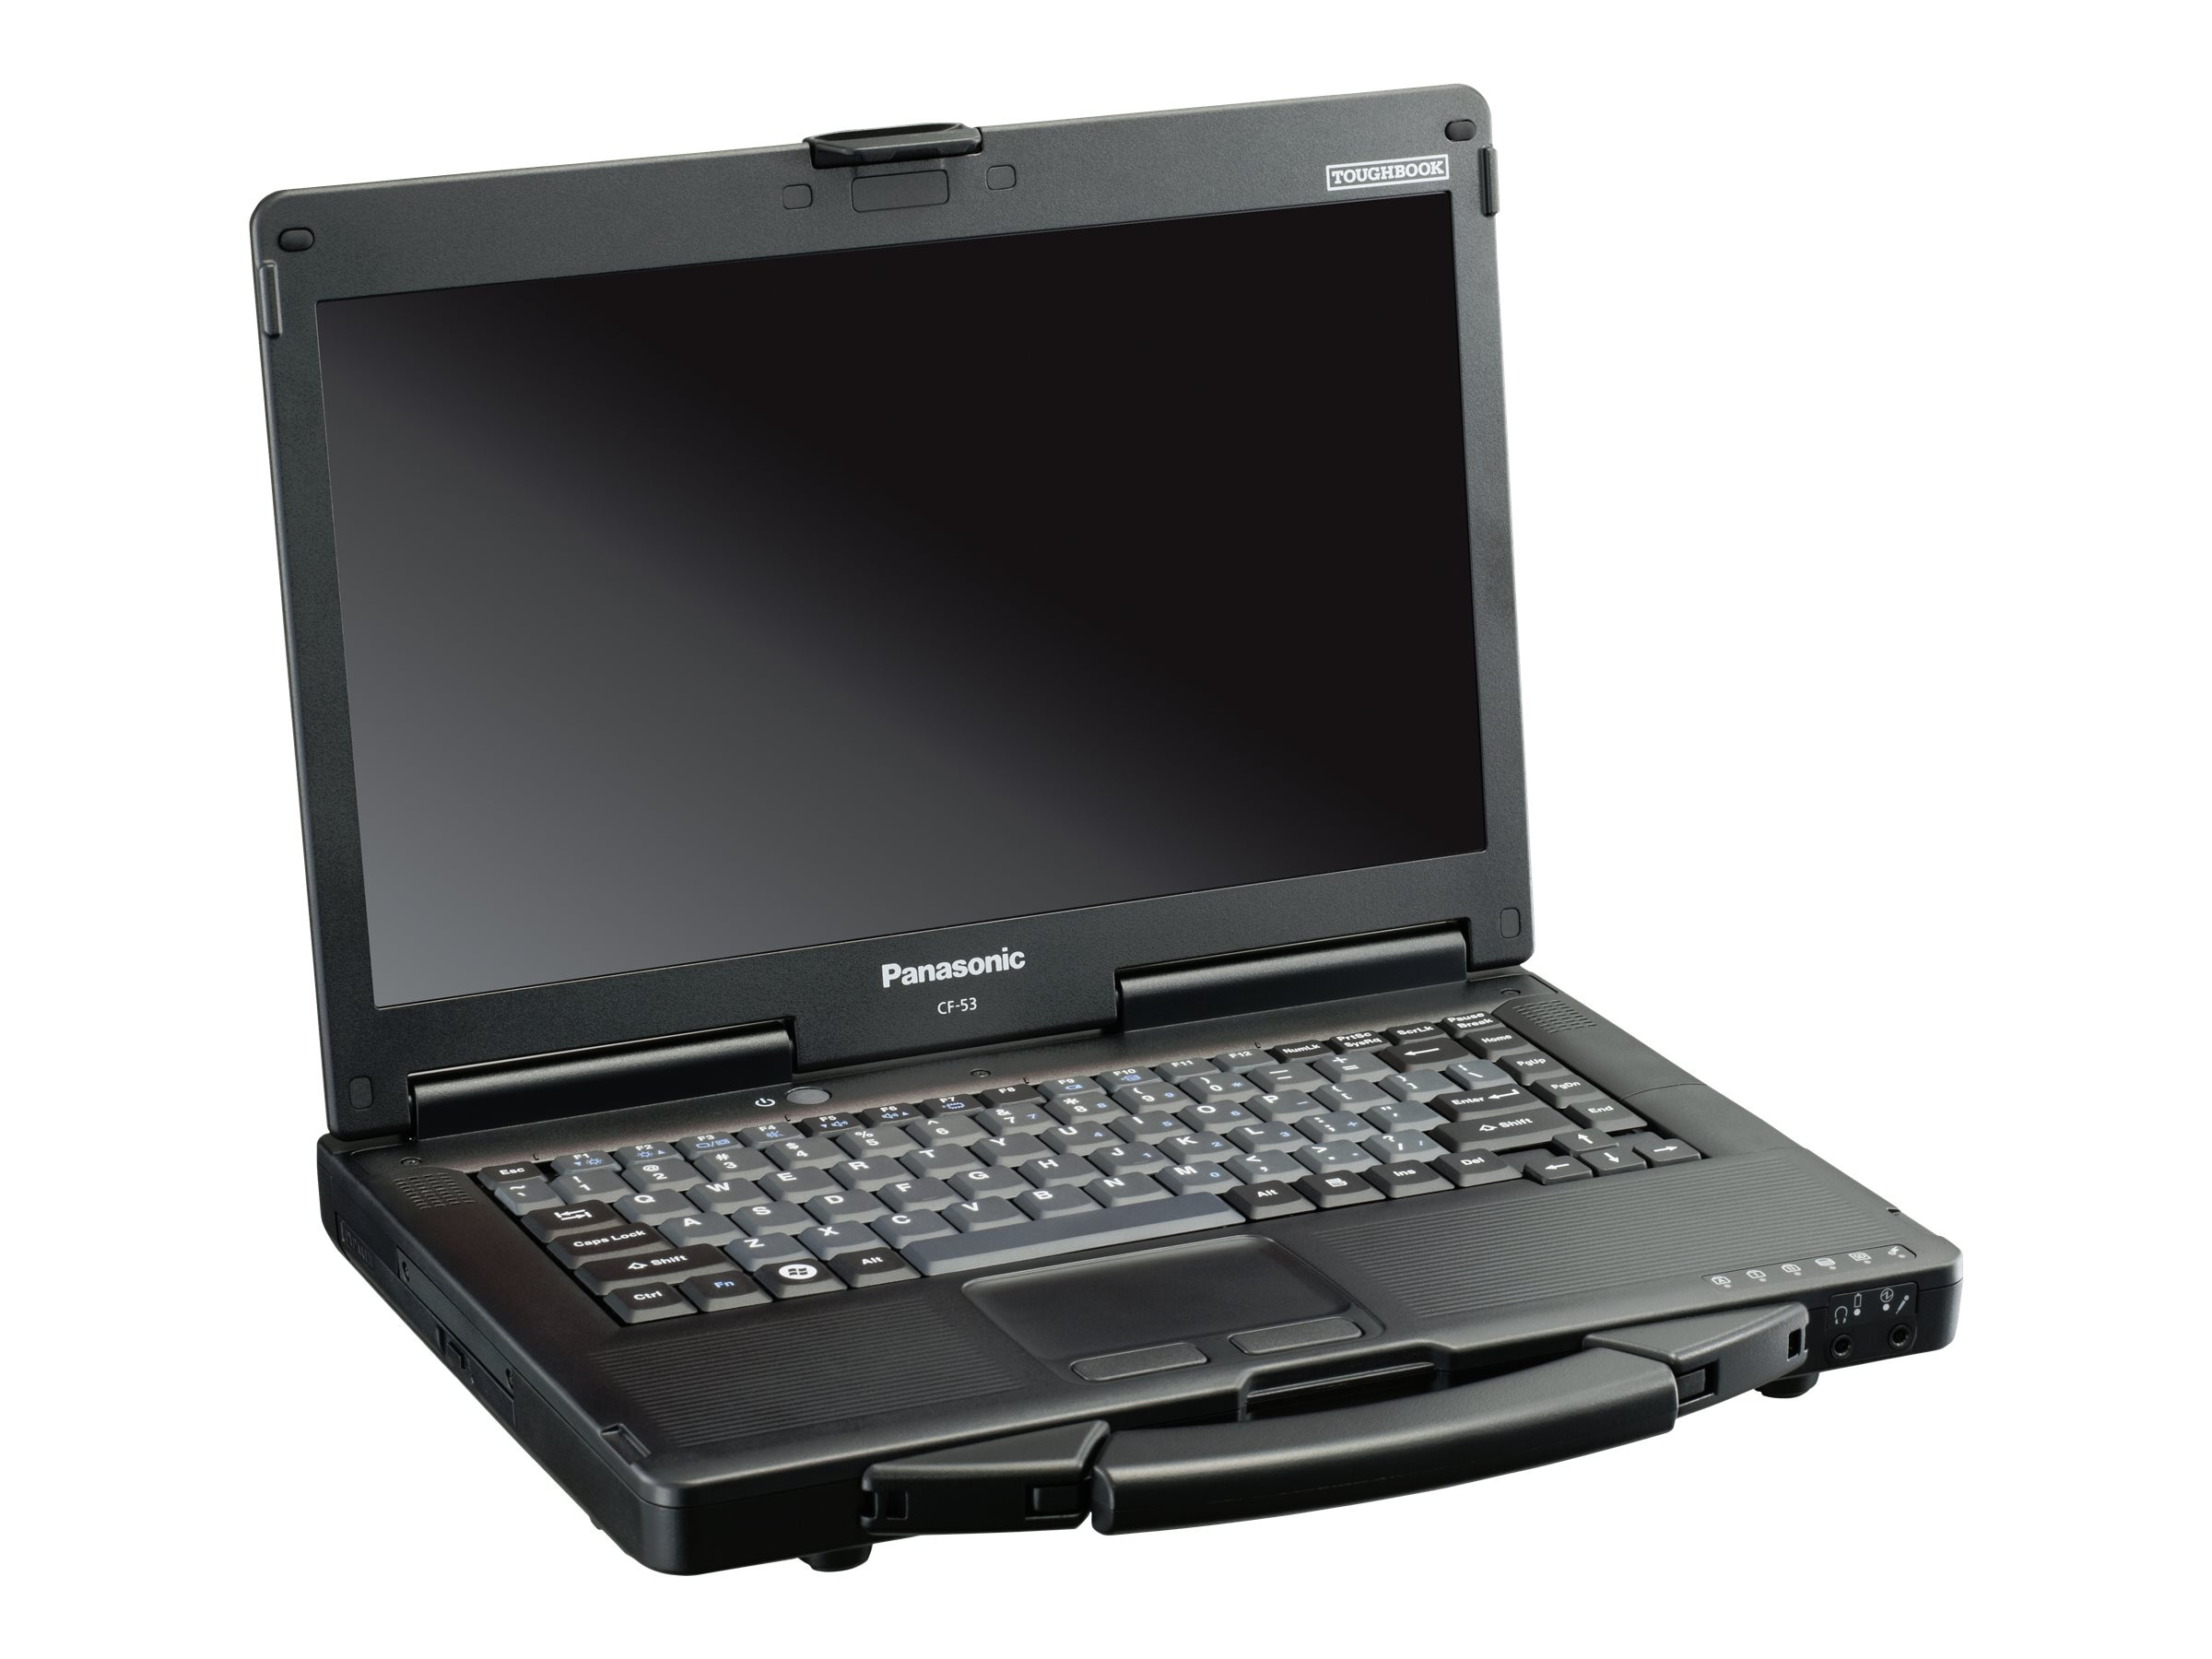 Panasonic Toughbook 53 2GHz Core i5 14in display, CF-532SUZYNM